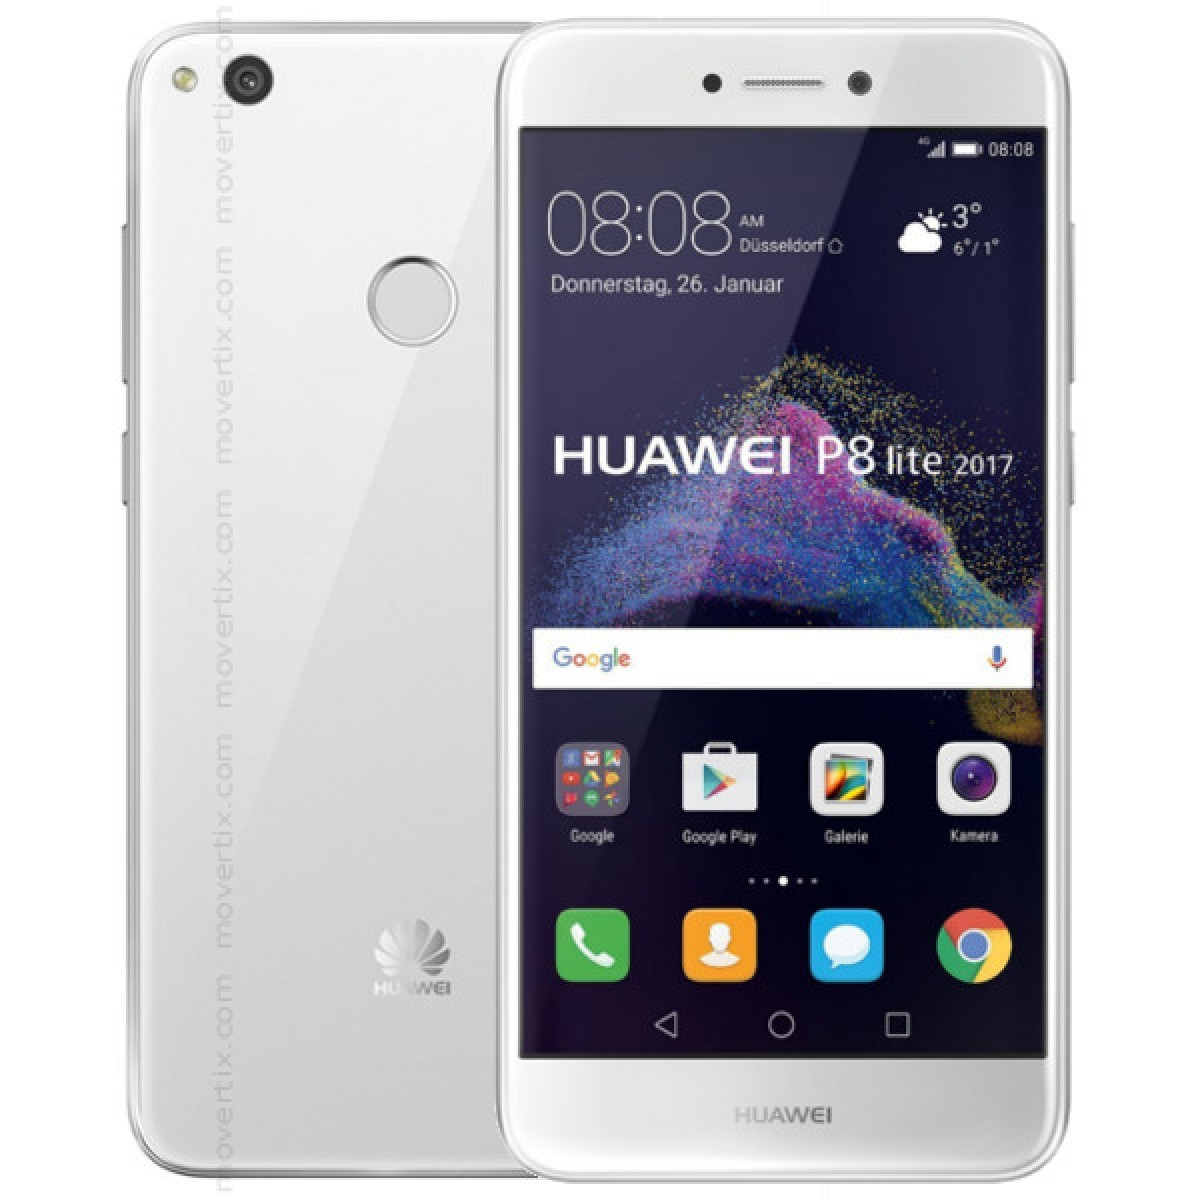 huawei p8 lite white 2017 6901443158034 movertix mobile phones shop. Black Bedroom Furniture Sets. Home Design Ideas